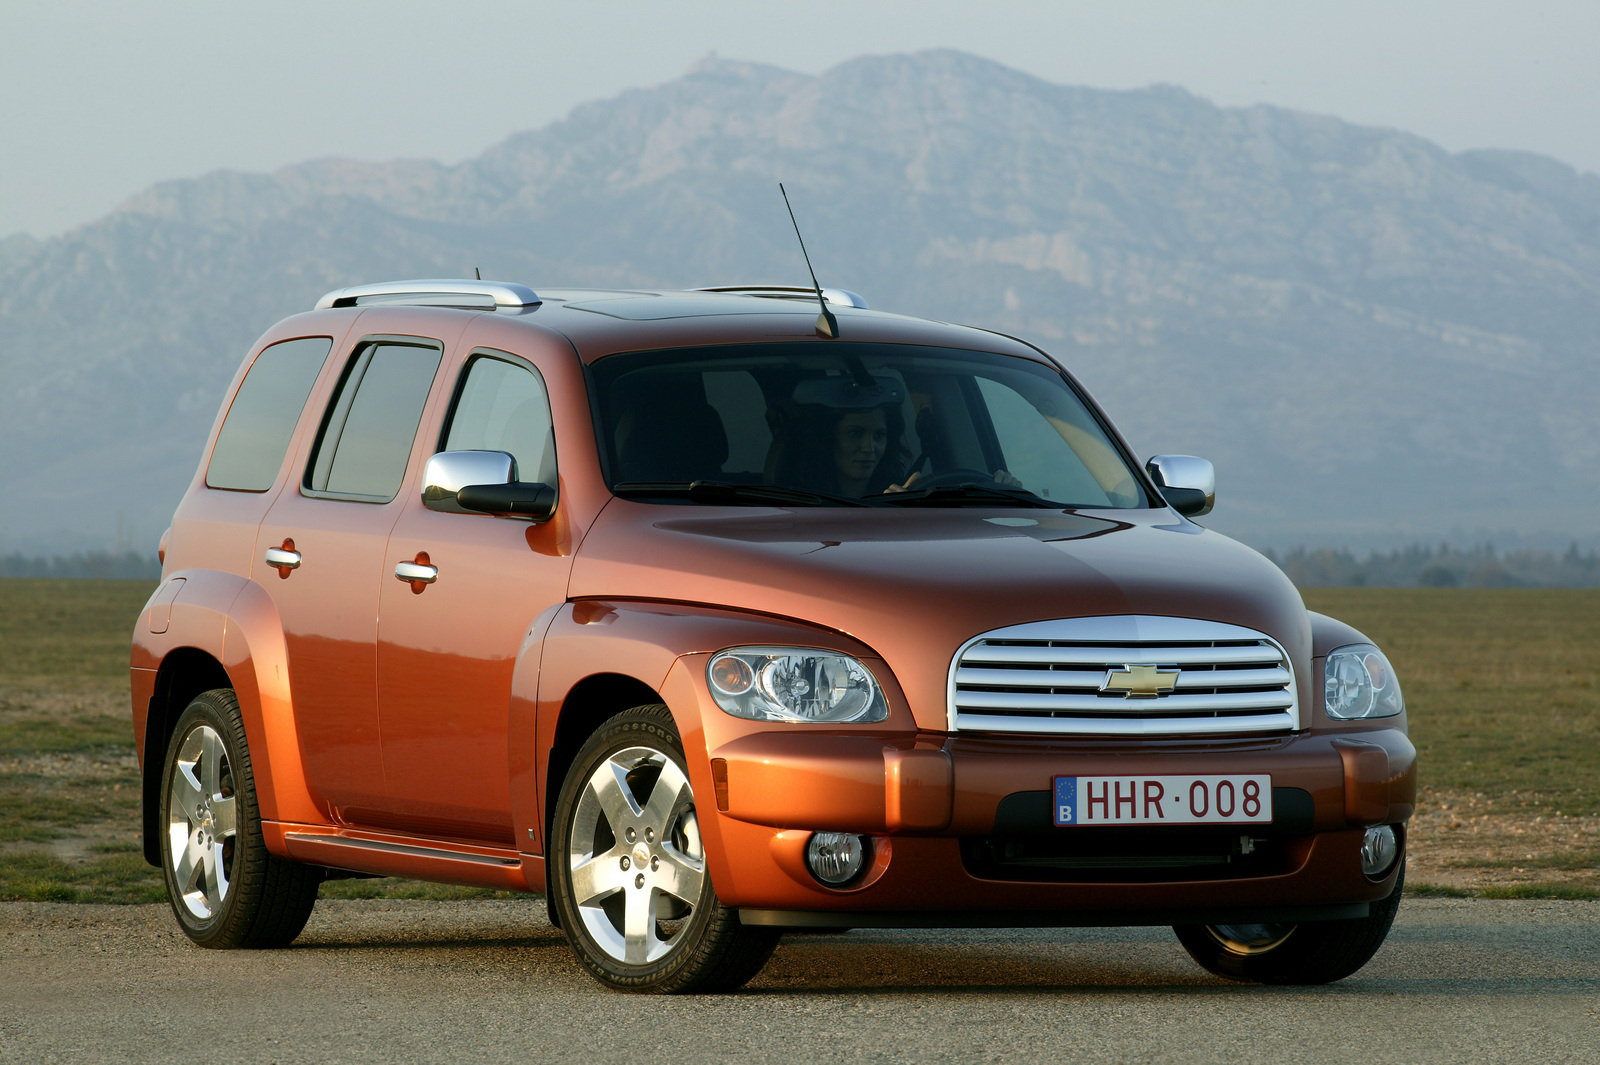 2007 chevrolet hhr review gallery top speed. Black Bedroom Furniture Sets. Home Design Ideas